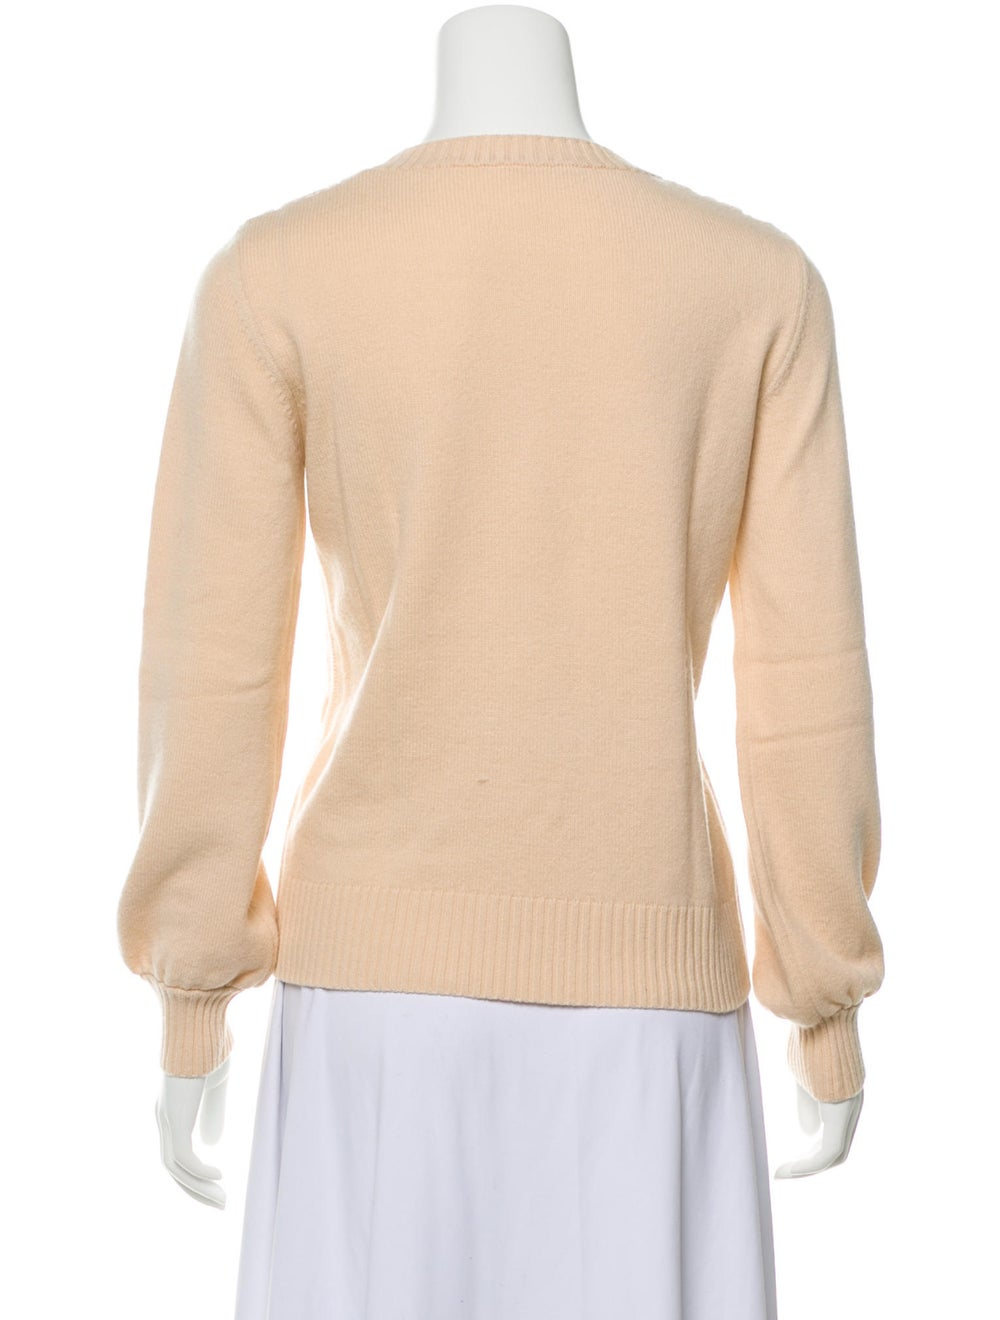 Chloé Wool Lace Sweater Pink - image 3